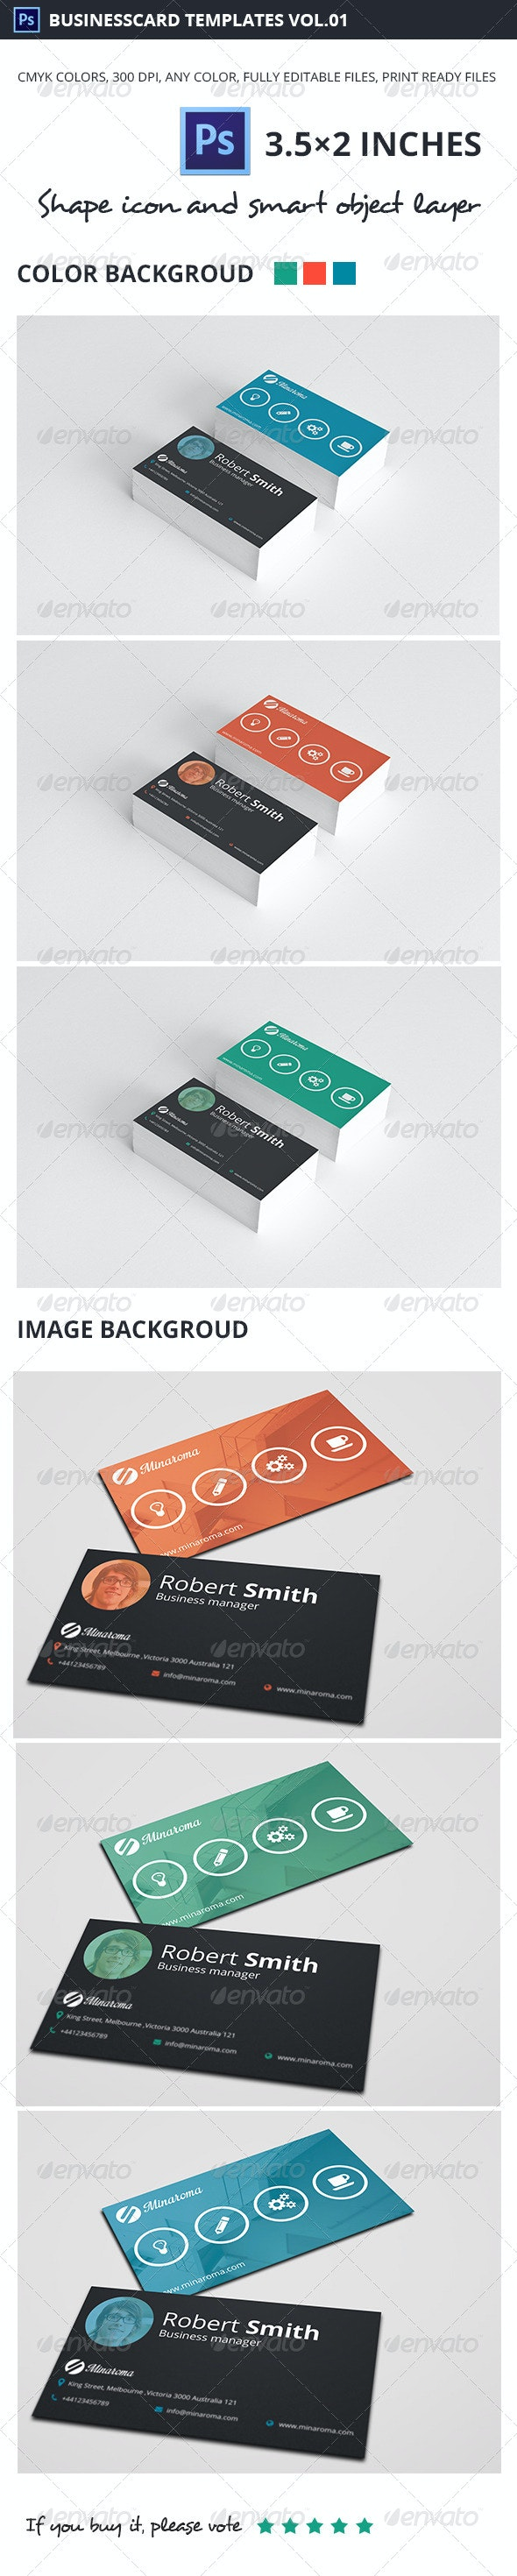 Business Card Template Vol.01 - Corporate Business Cards